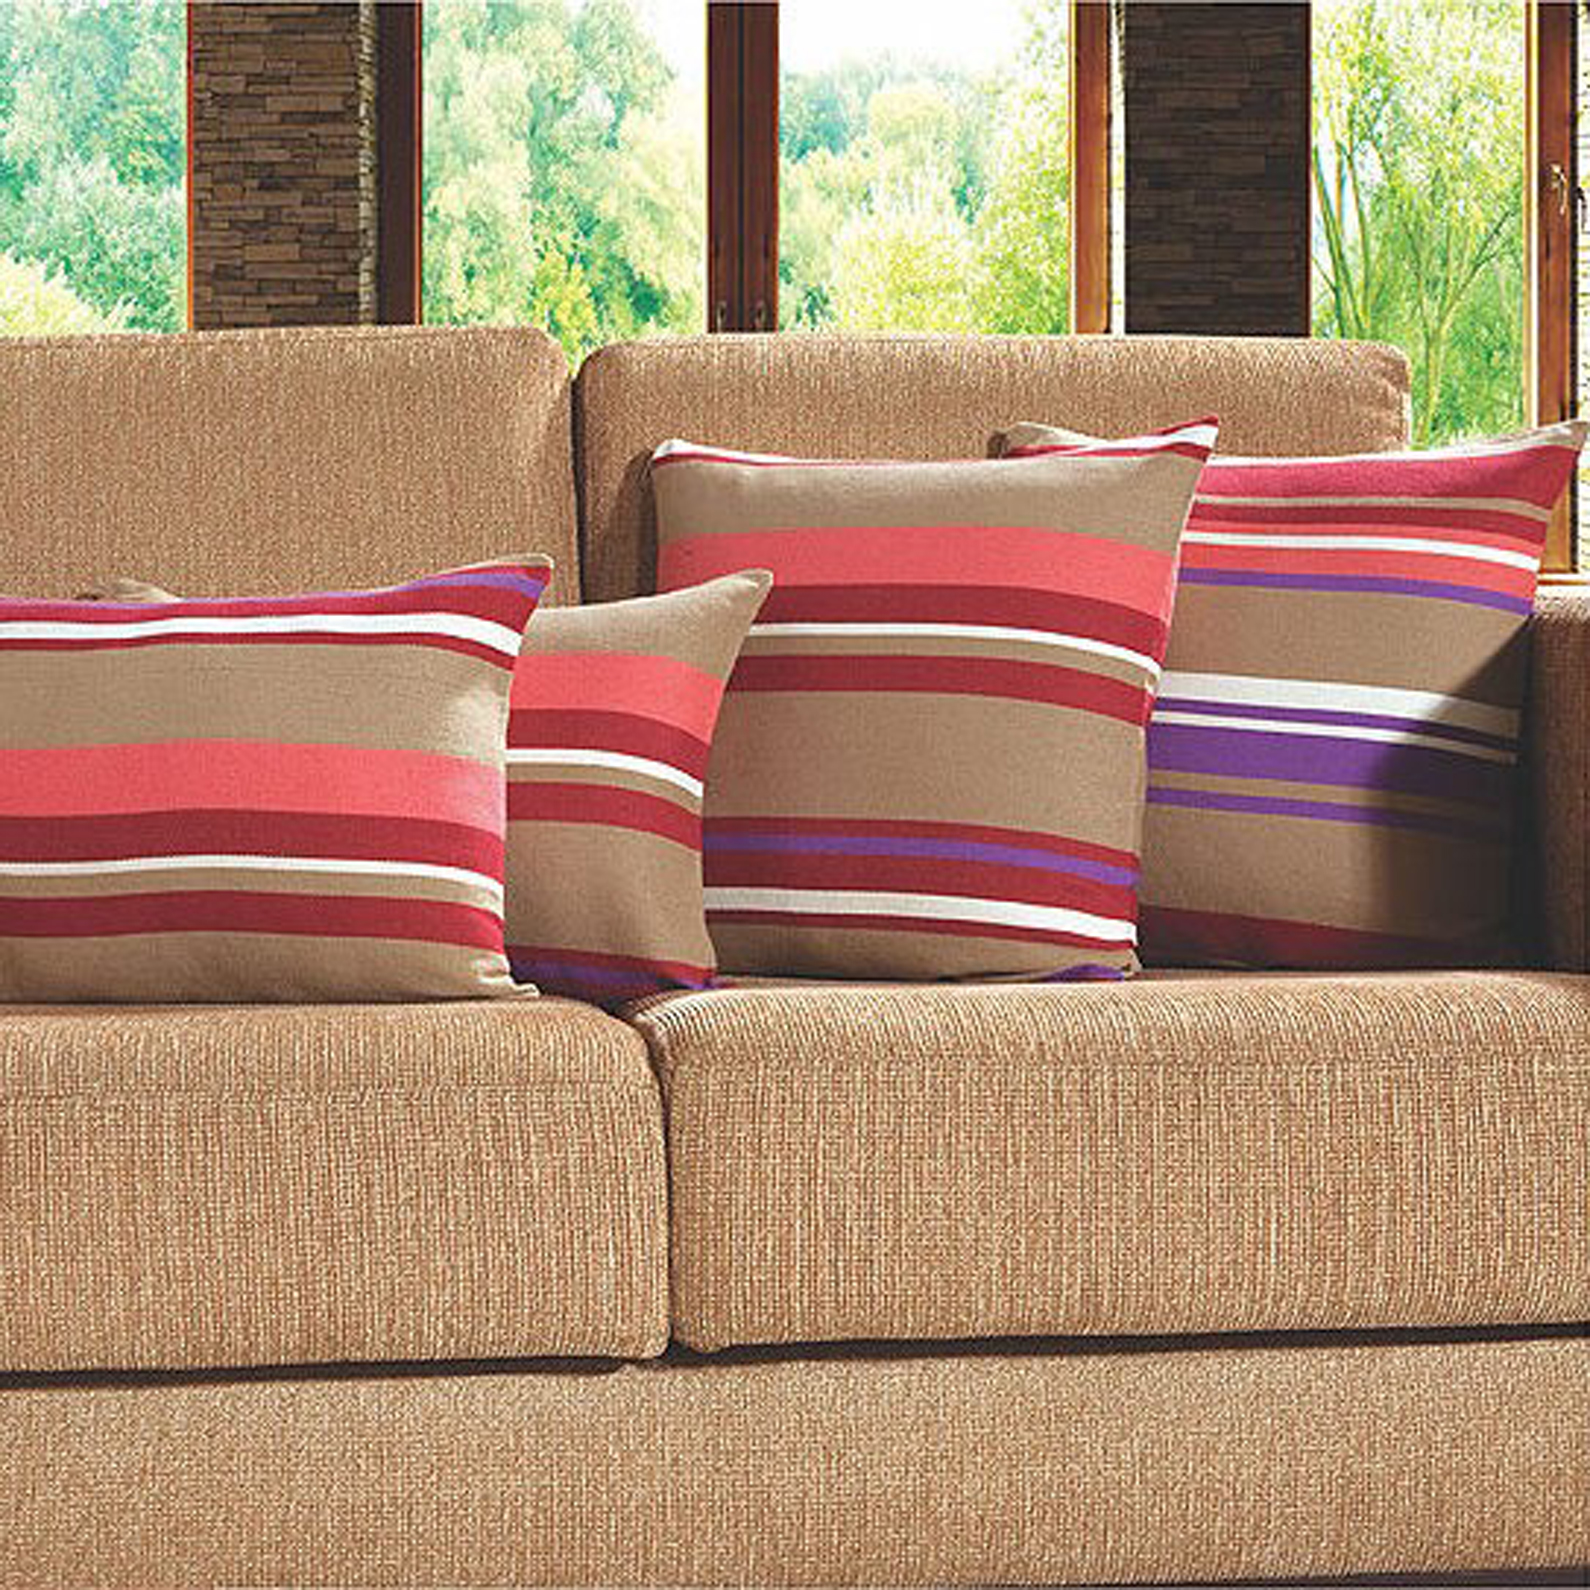 Mantas para sof for Mantas sofa